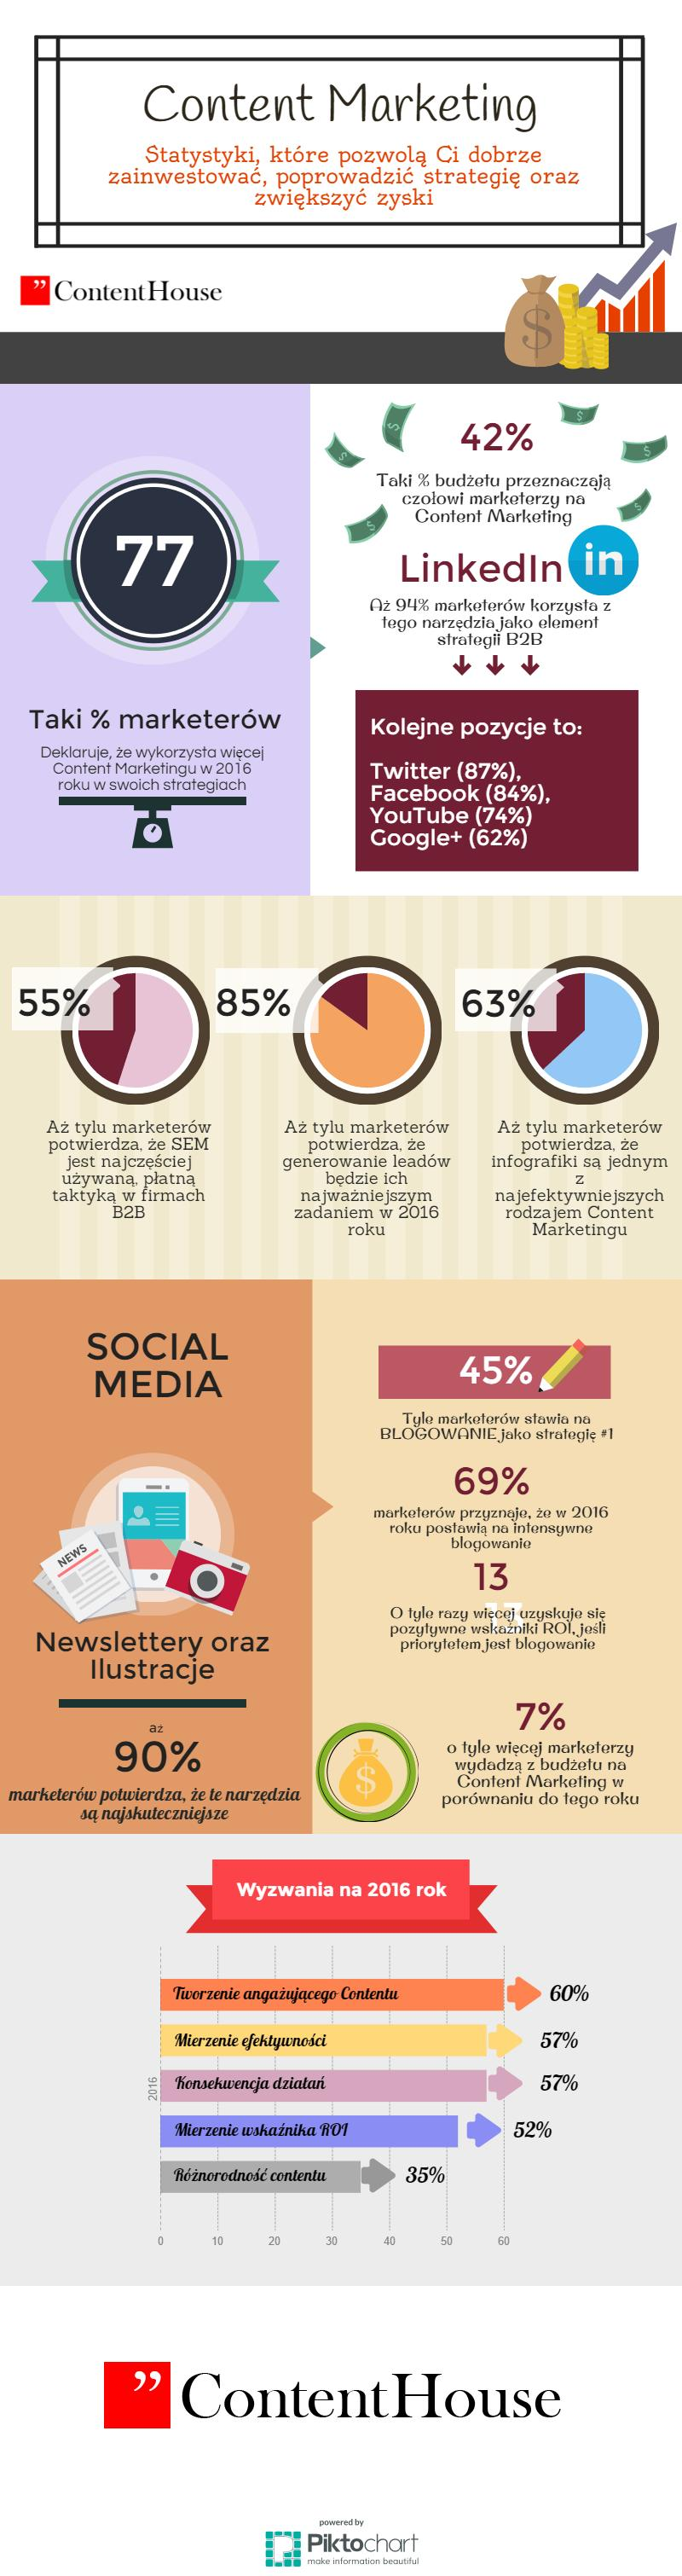 infografika content marketing